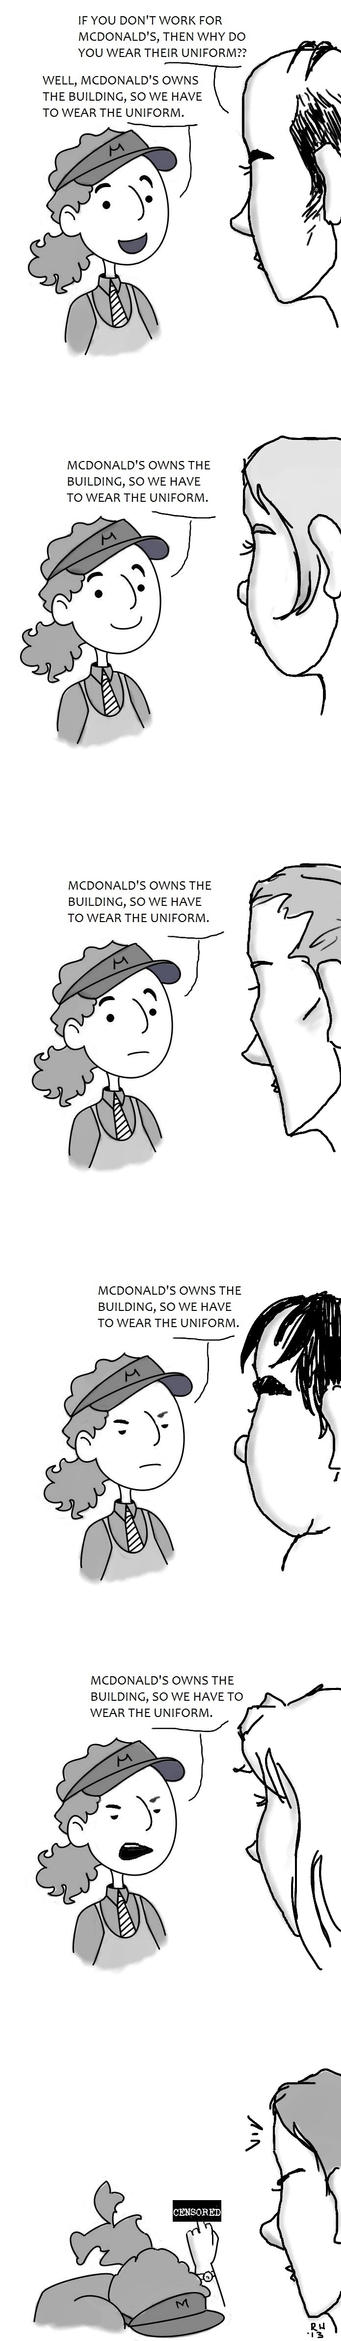 McDonald's Owns the Building. by TheRandomAnchovy